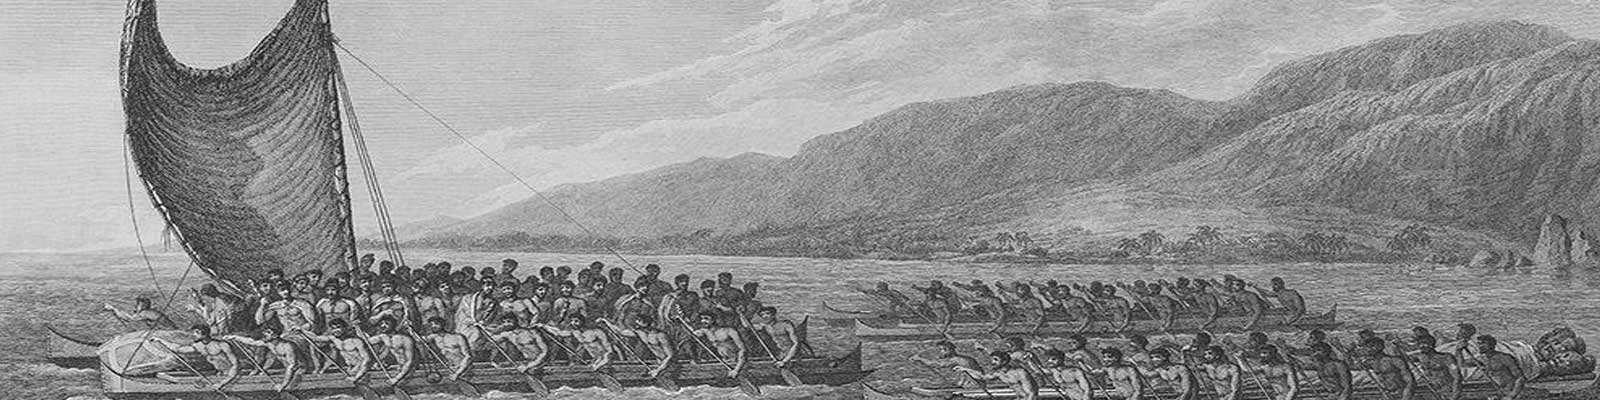 THE FIRST PACIFIC VOYAGERS